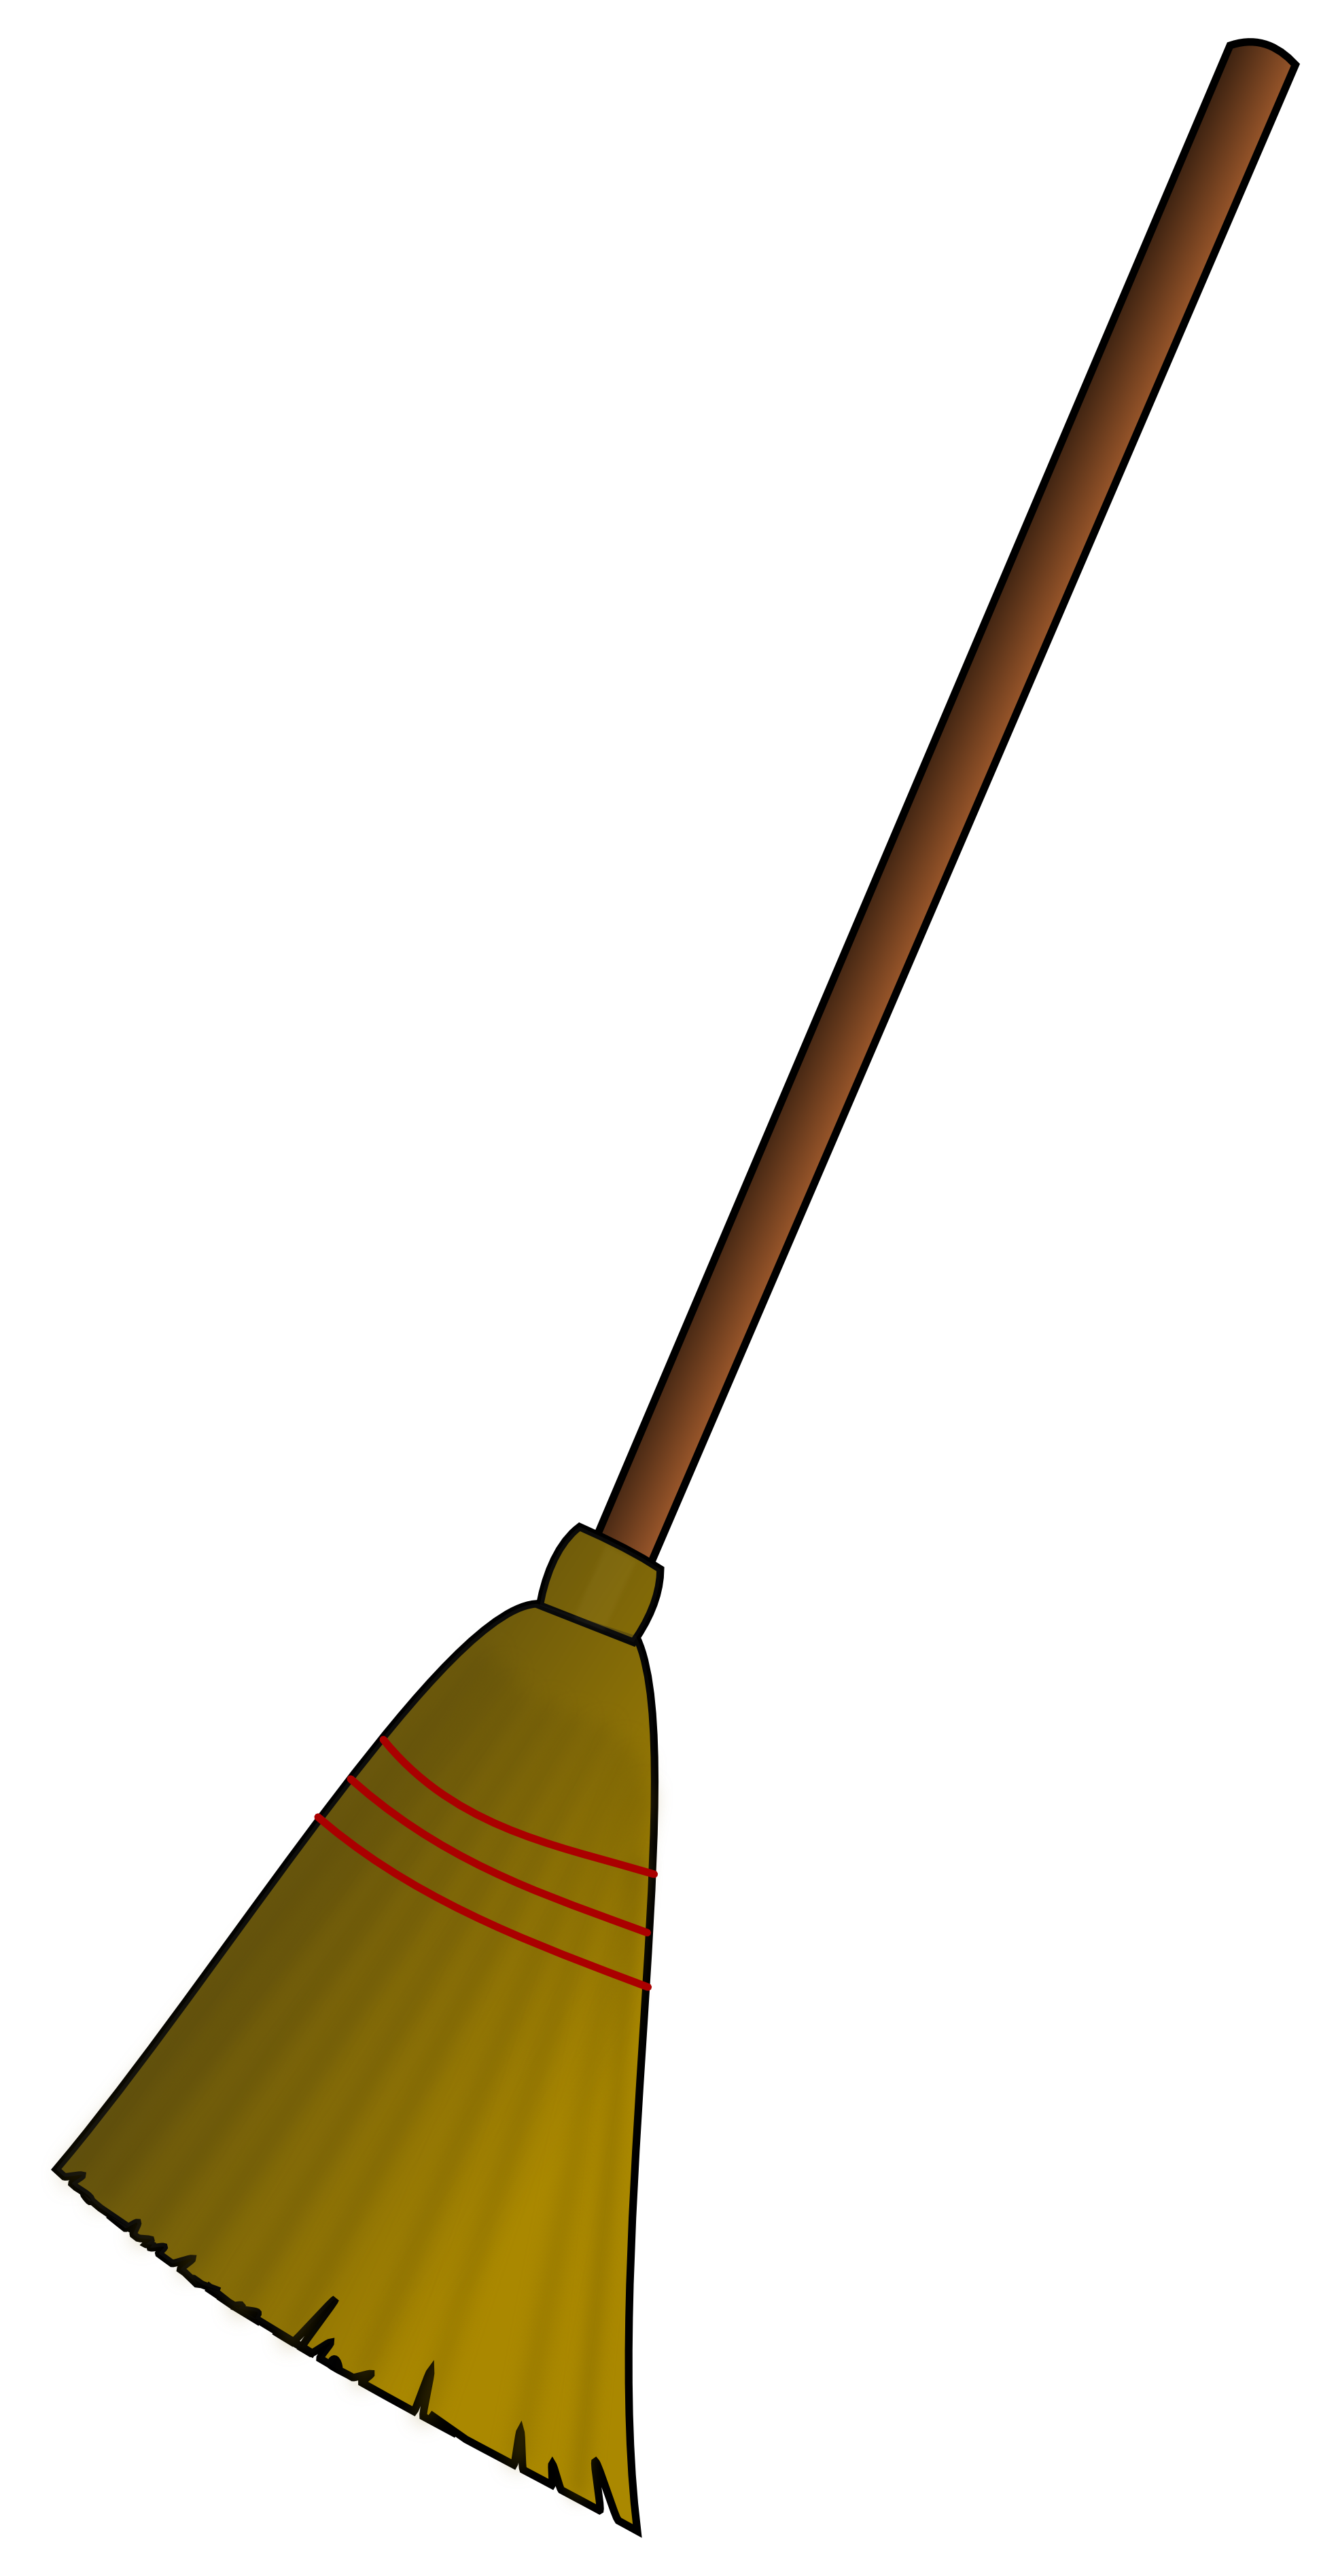 Broom clipart sweeping broom. Images for and mop